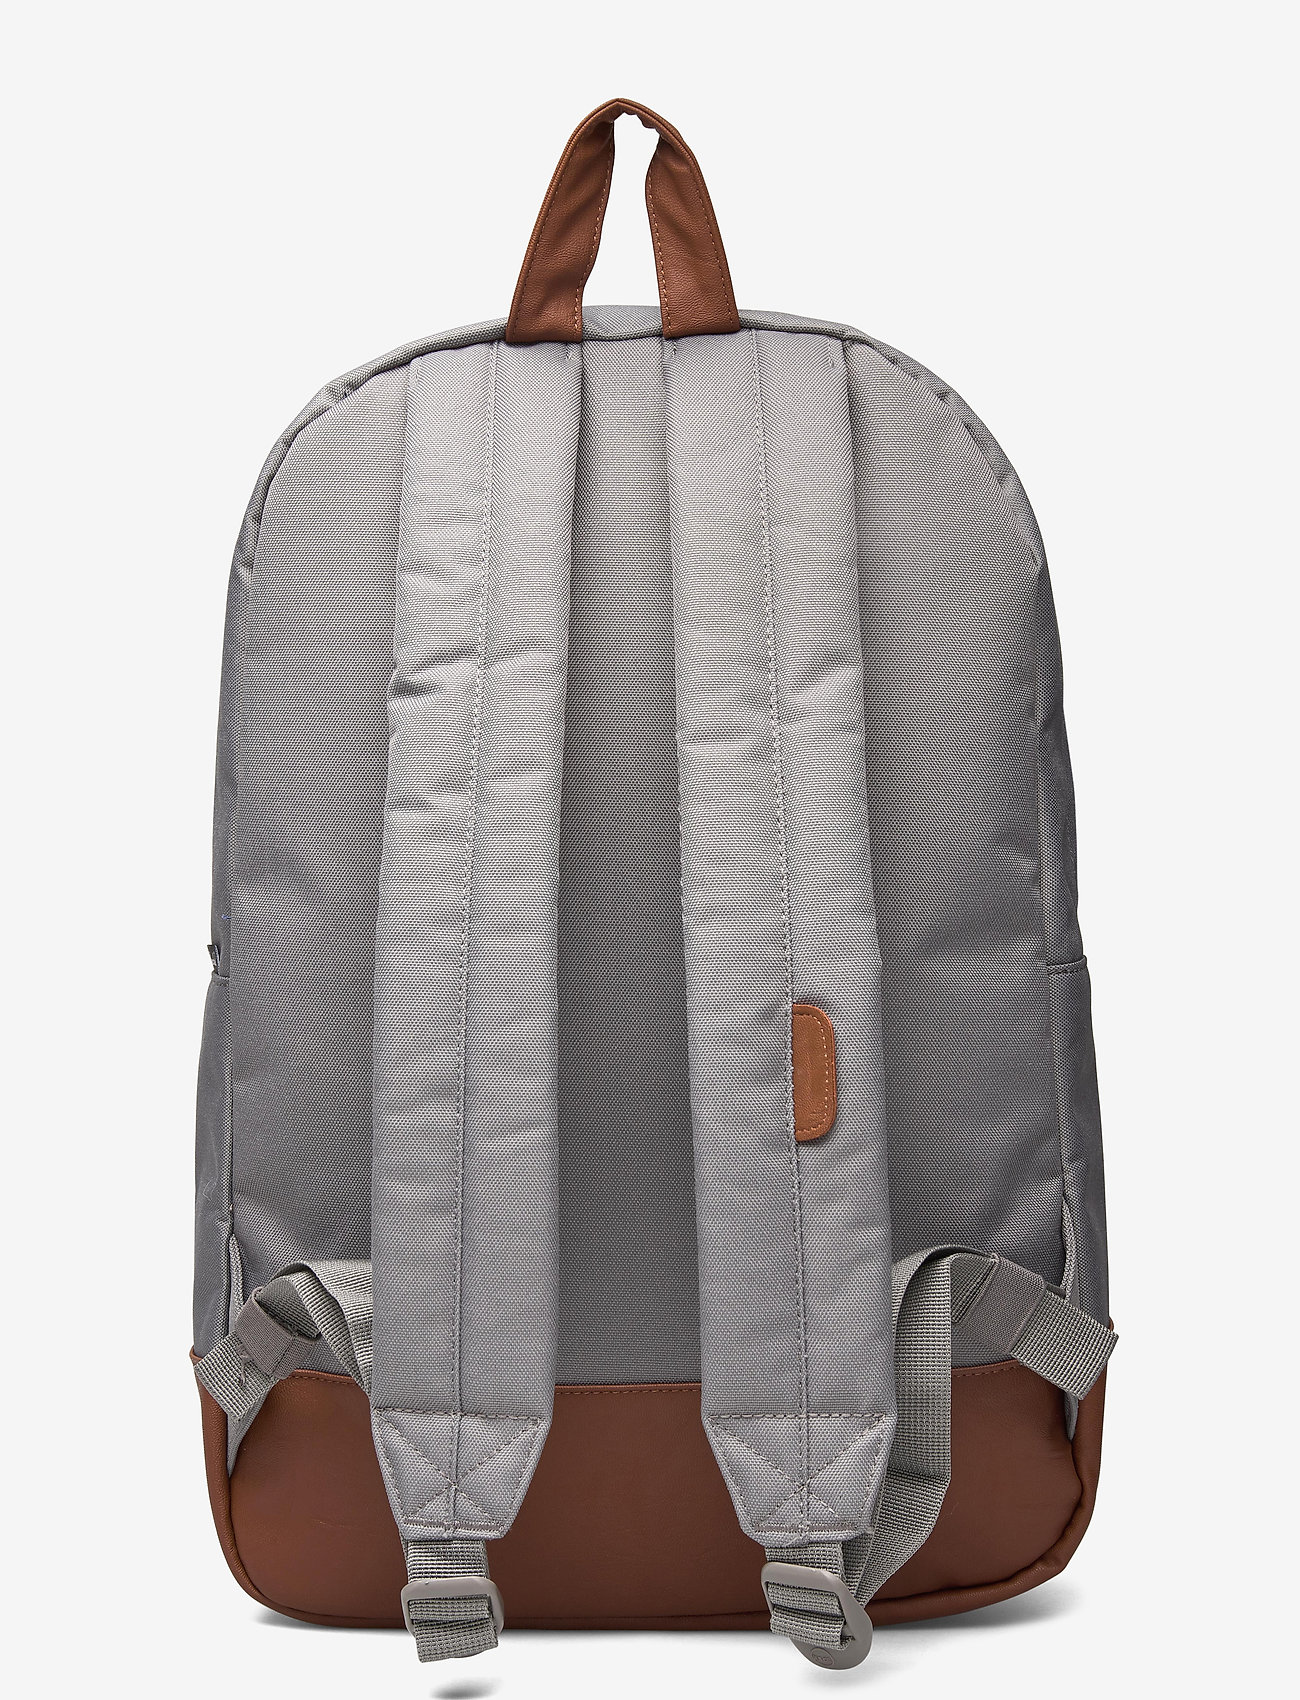 Herschel - Heritage - Grey - backpacks - grey - 1